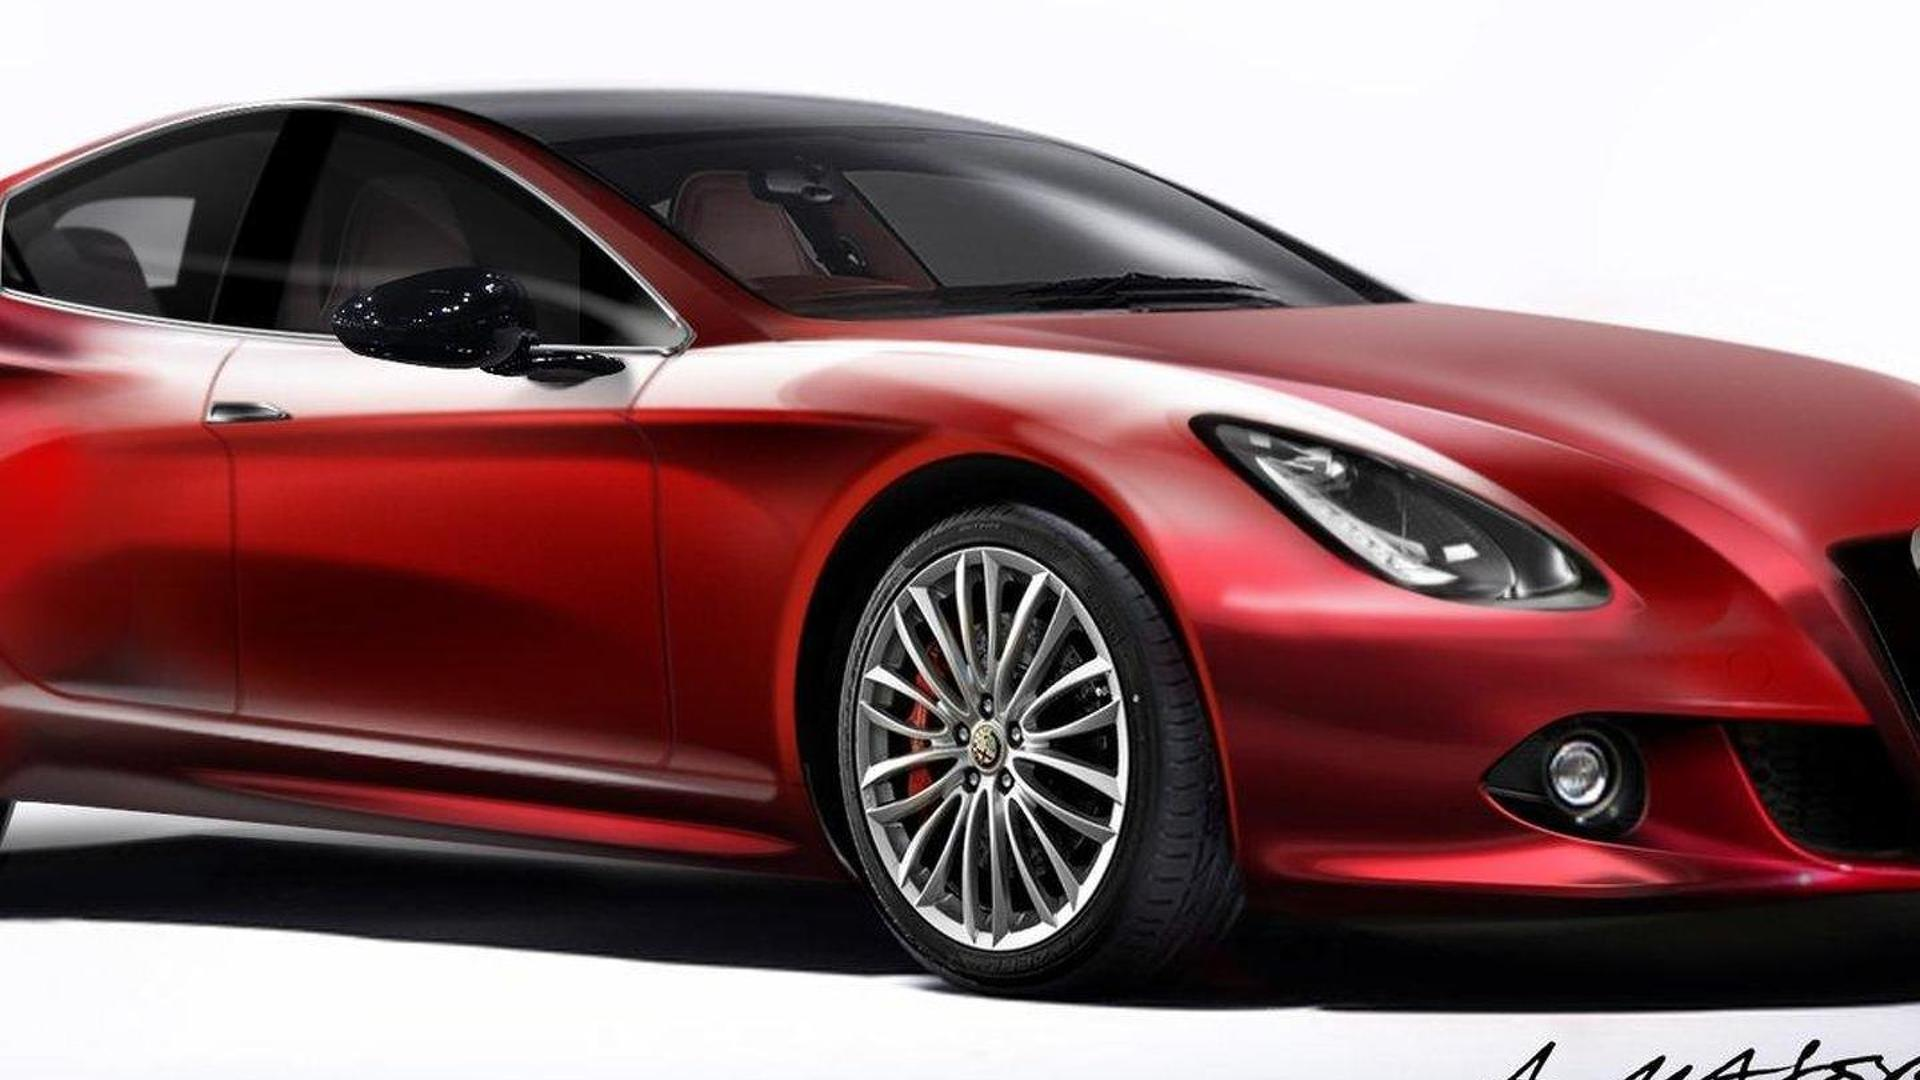 Sergio Marchionne says Alfa Romeo is still not for sale